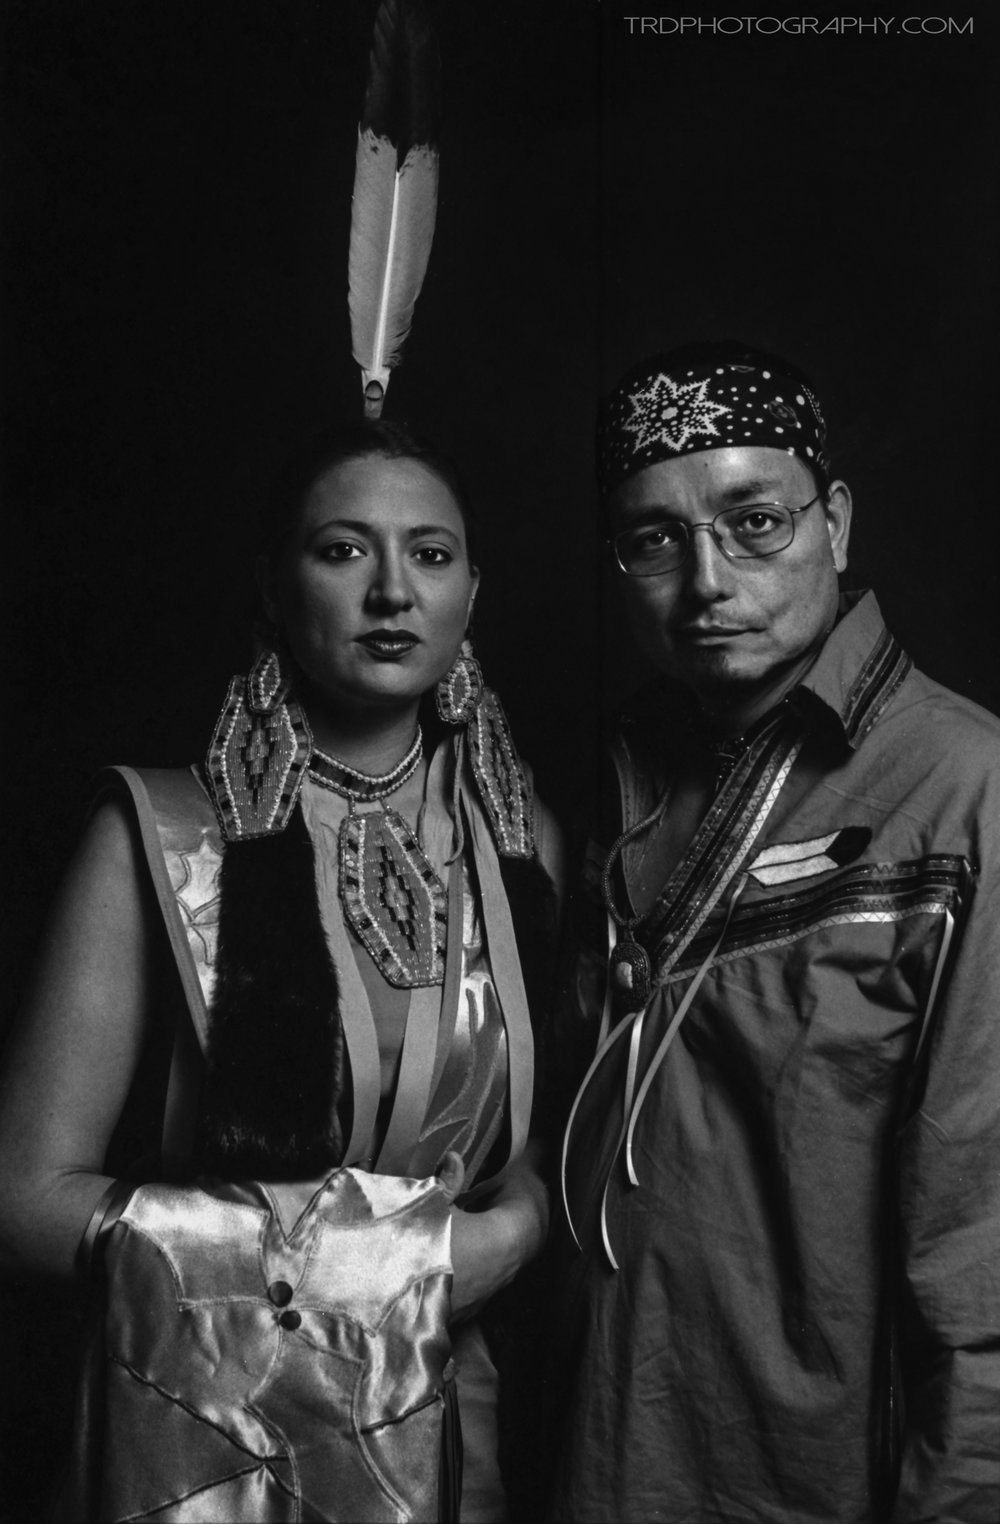 Native American Portrait Series - Holly & Jeff - TRD Photography - Film